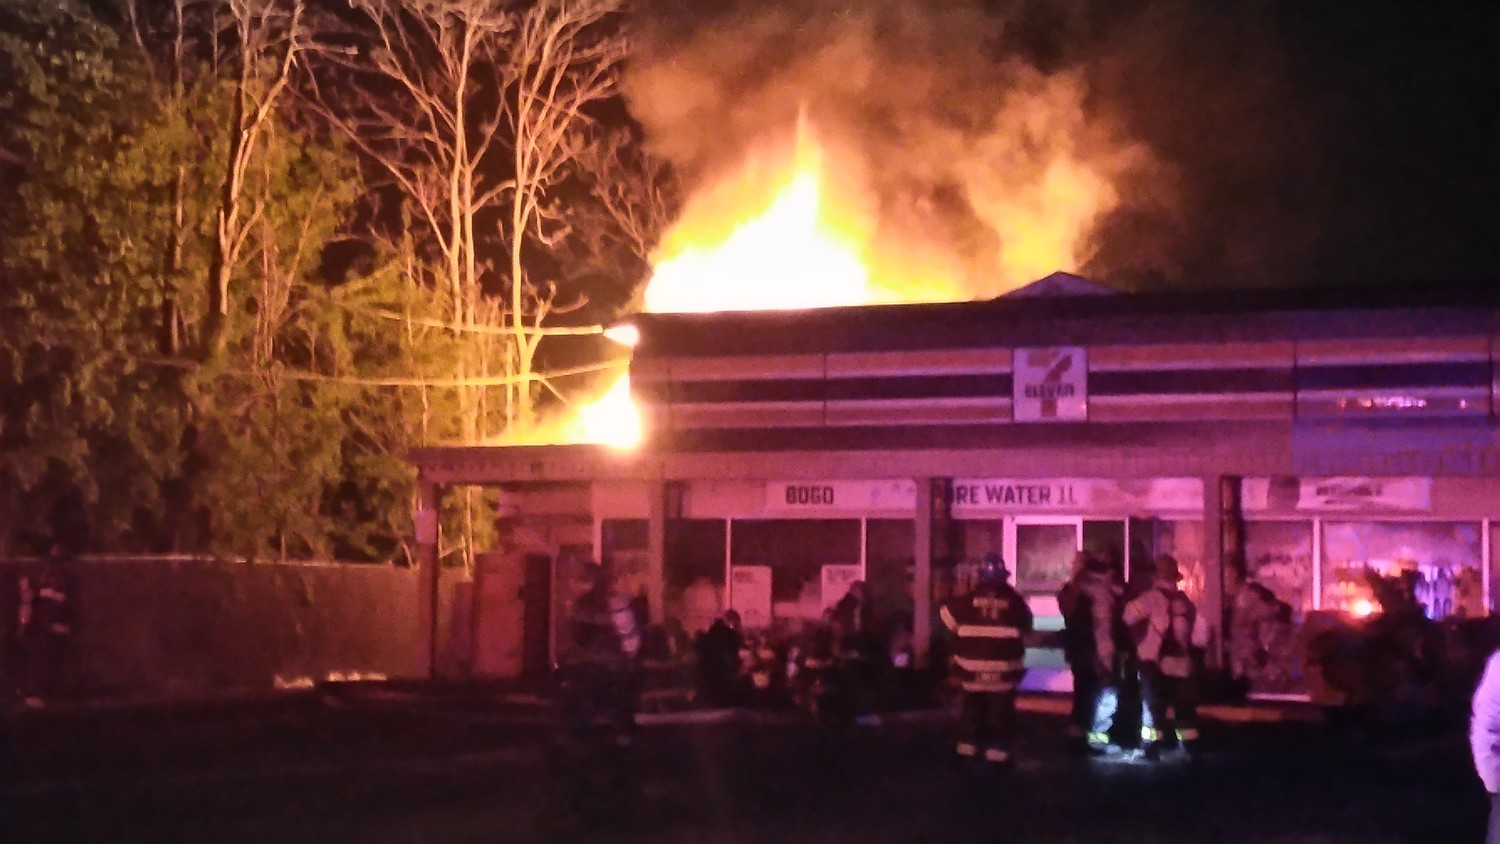 Fire engulfs the roof of the 7-11 on Sandhill Road in Wantagh at 1:32am